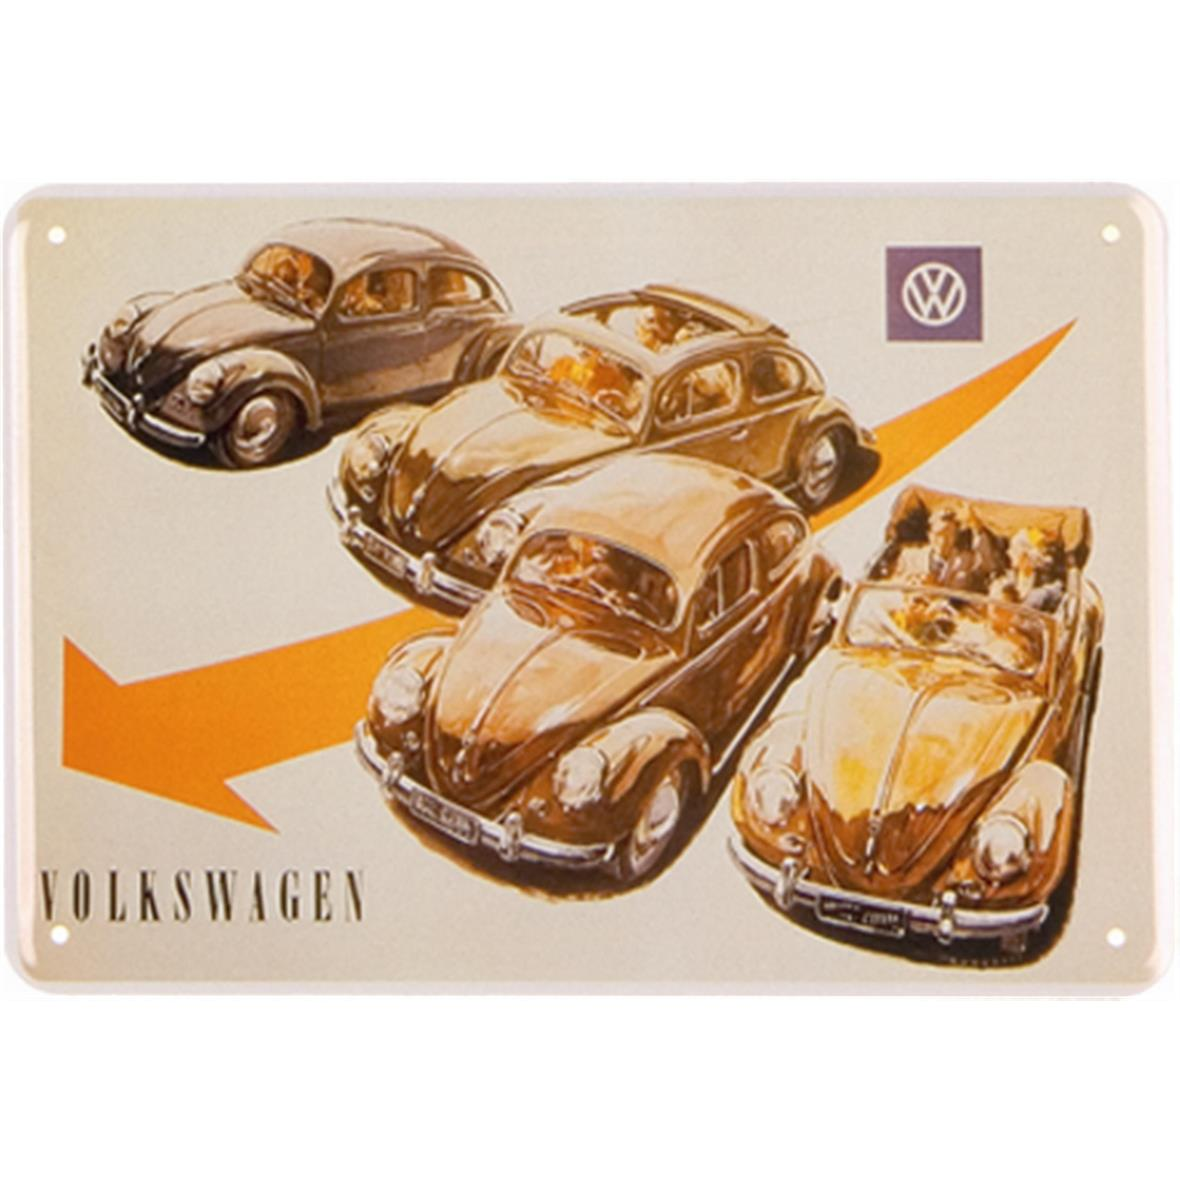 Product Image for 'Metal Post Card VW Collection VW Beetle - 4 BeetlesTitle'